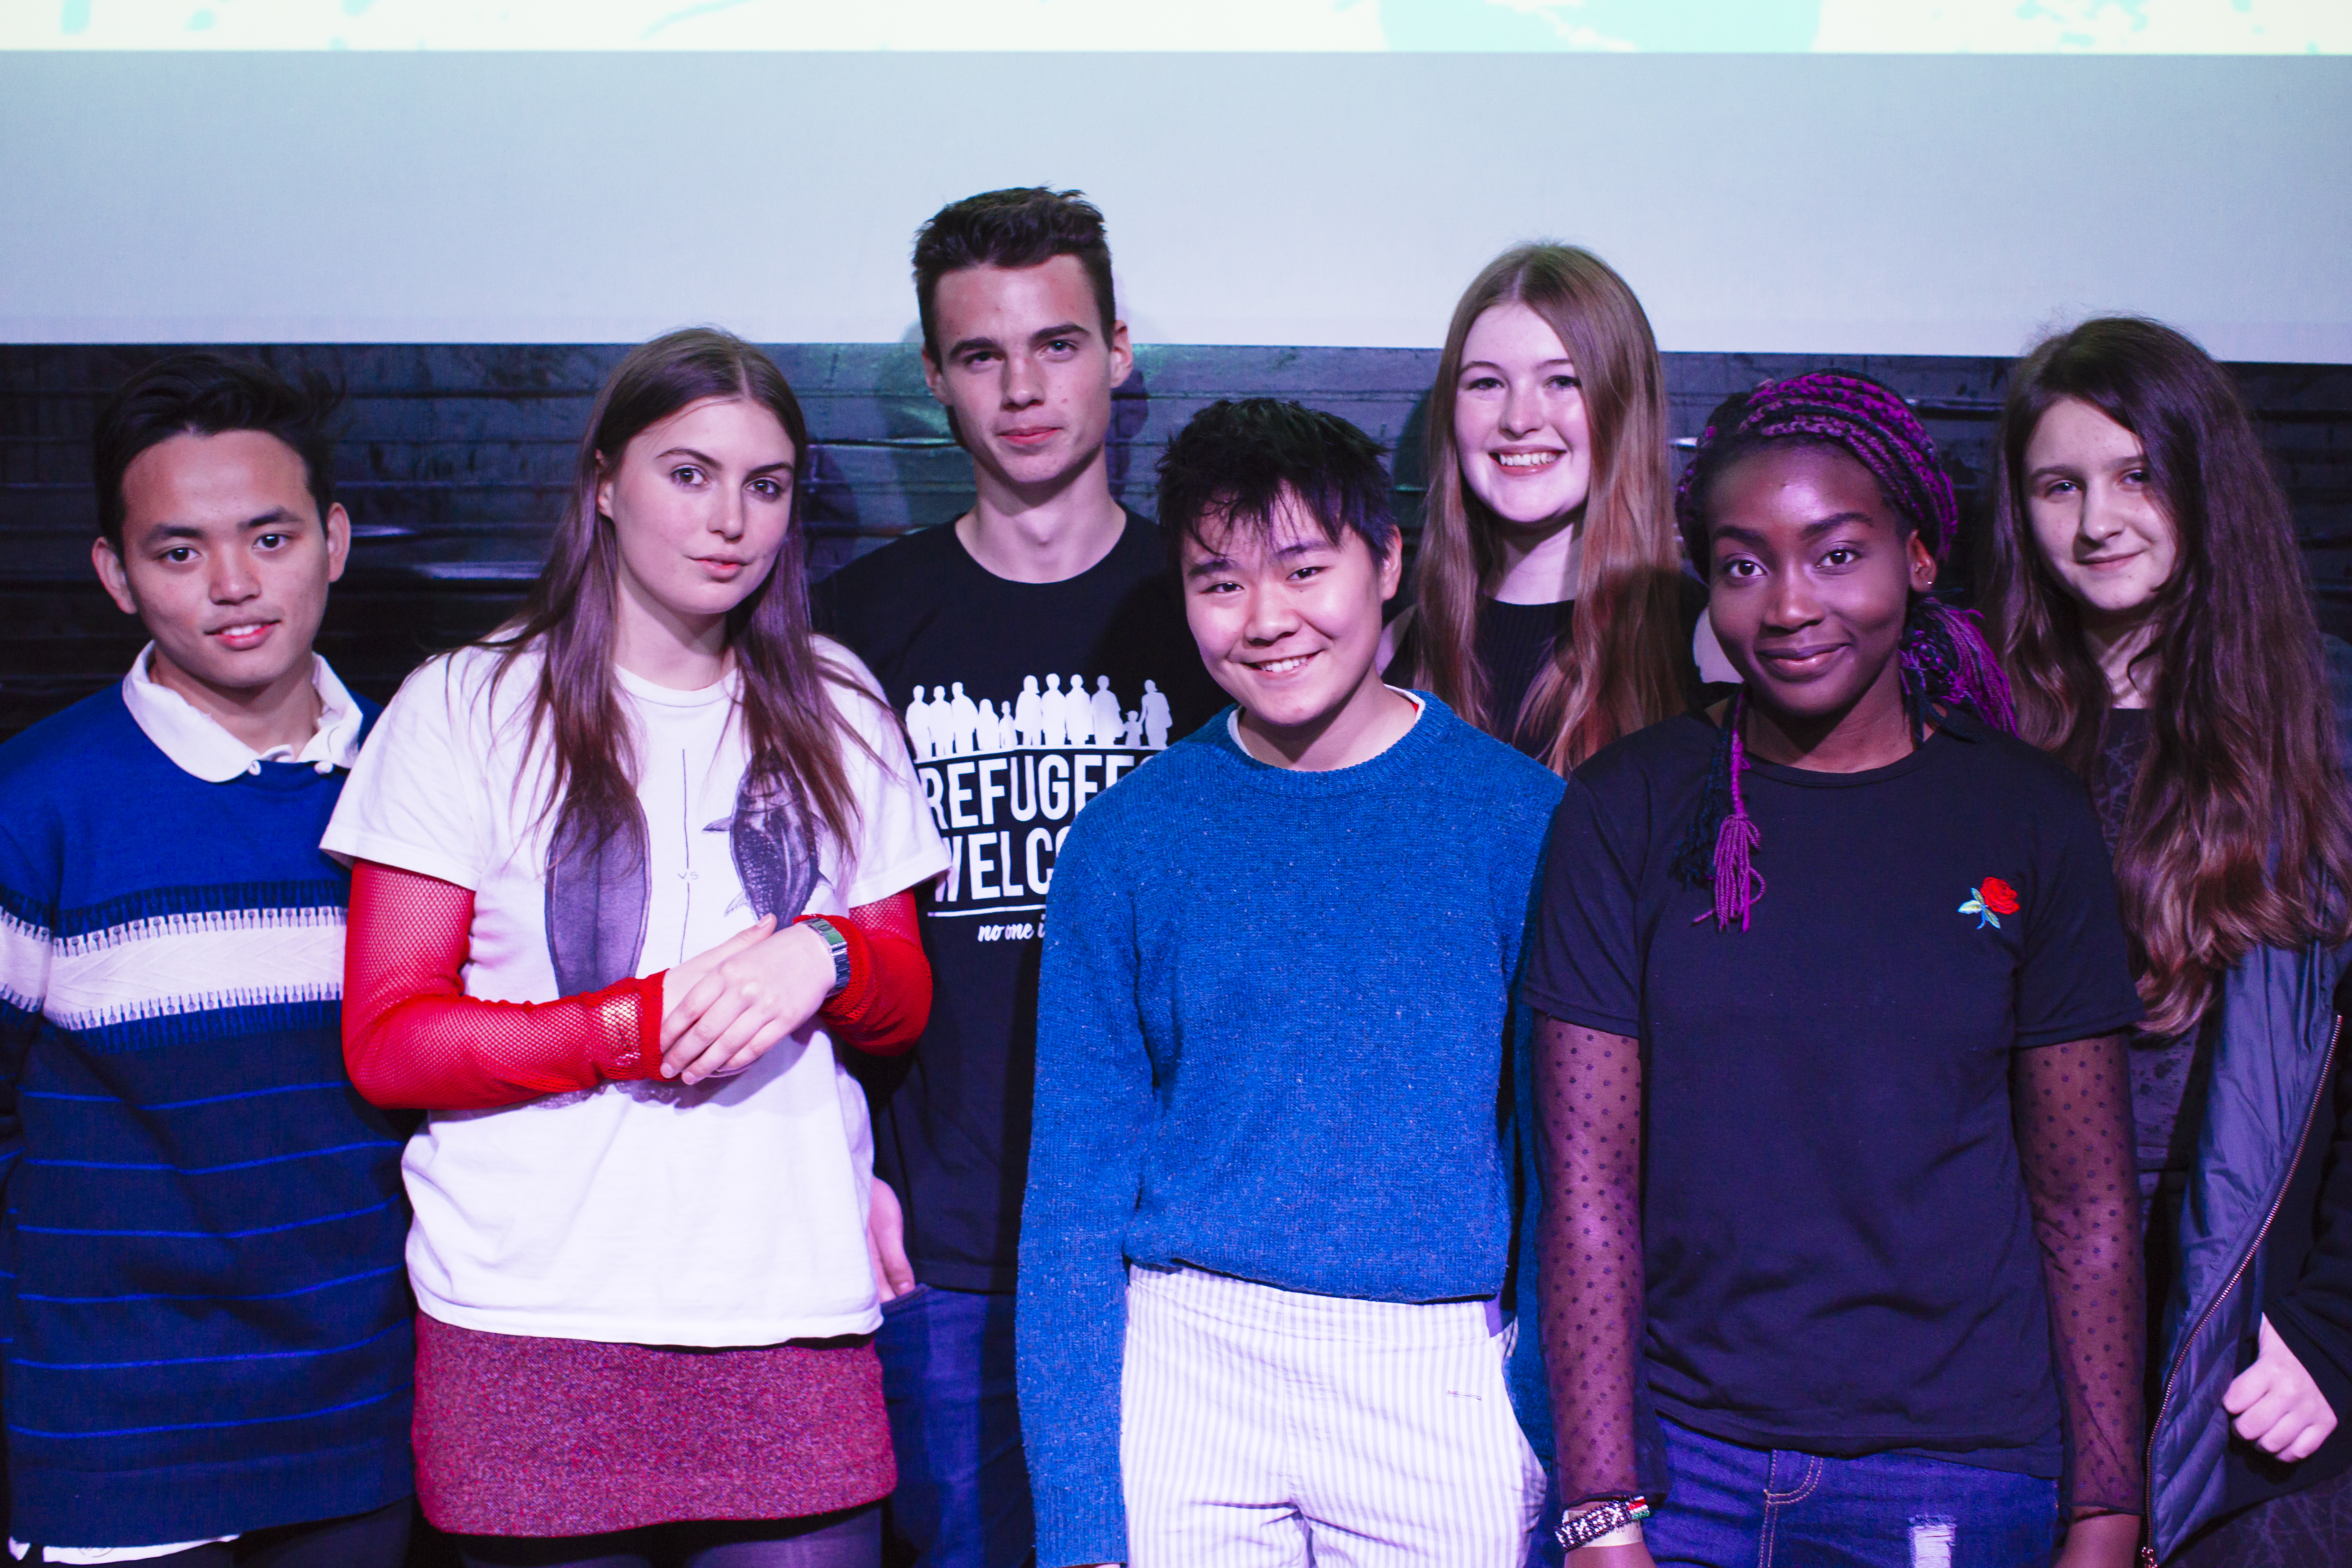 Image of SLAMbassadors 2017 winners: from left to right, Mukahang Limbu, Emmeline Armitage, Eben Roddis, Honey Birch, Chelsea Stockham, Arinola Adegbite, and Charlotte Sonnex. Photo by Cesare de Giglio for The Poetry Society.